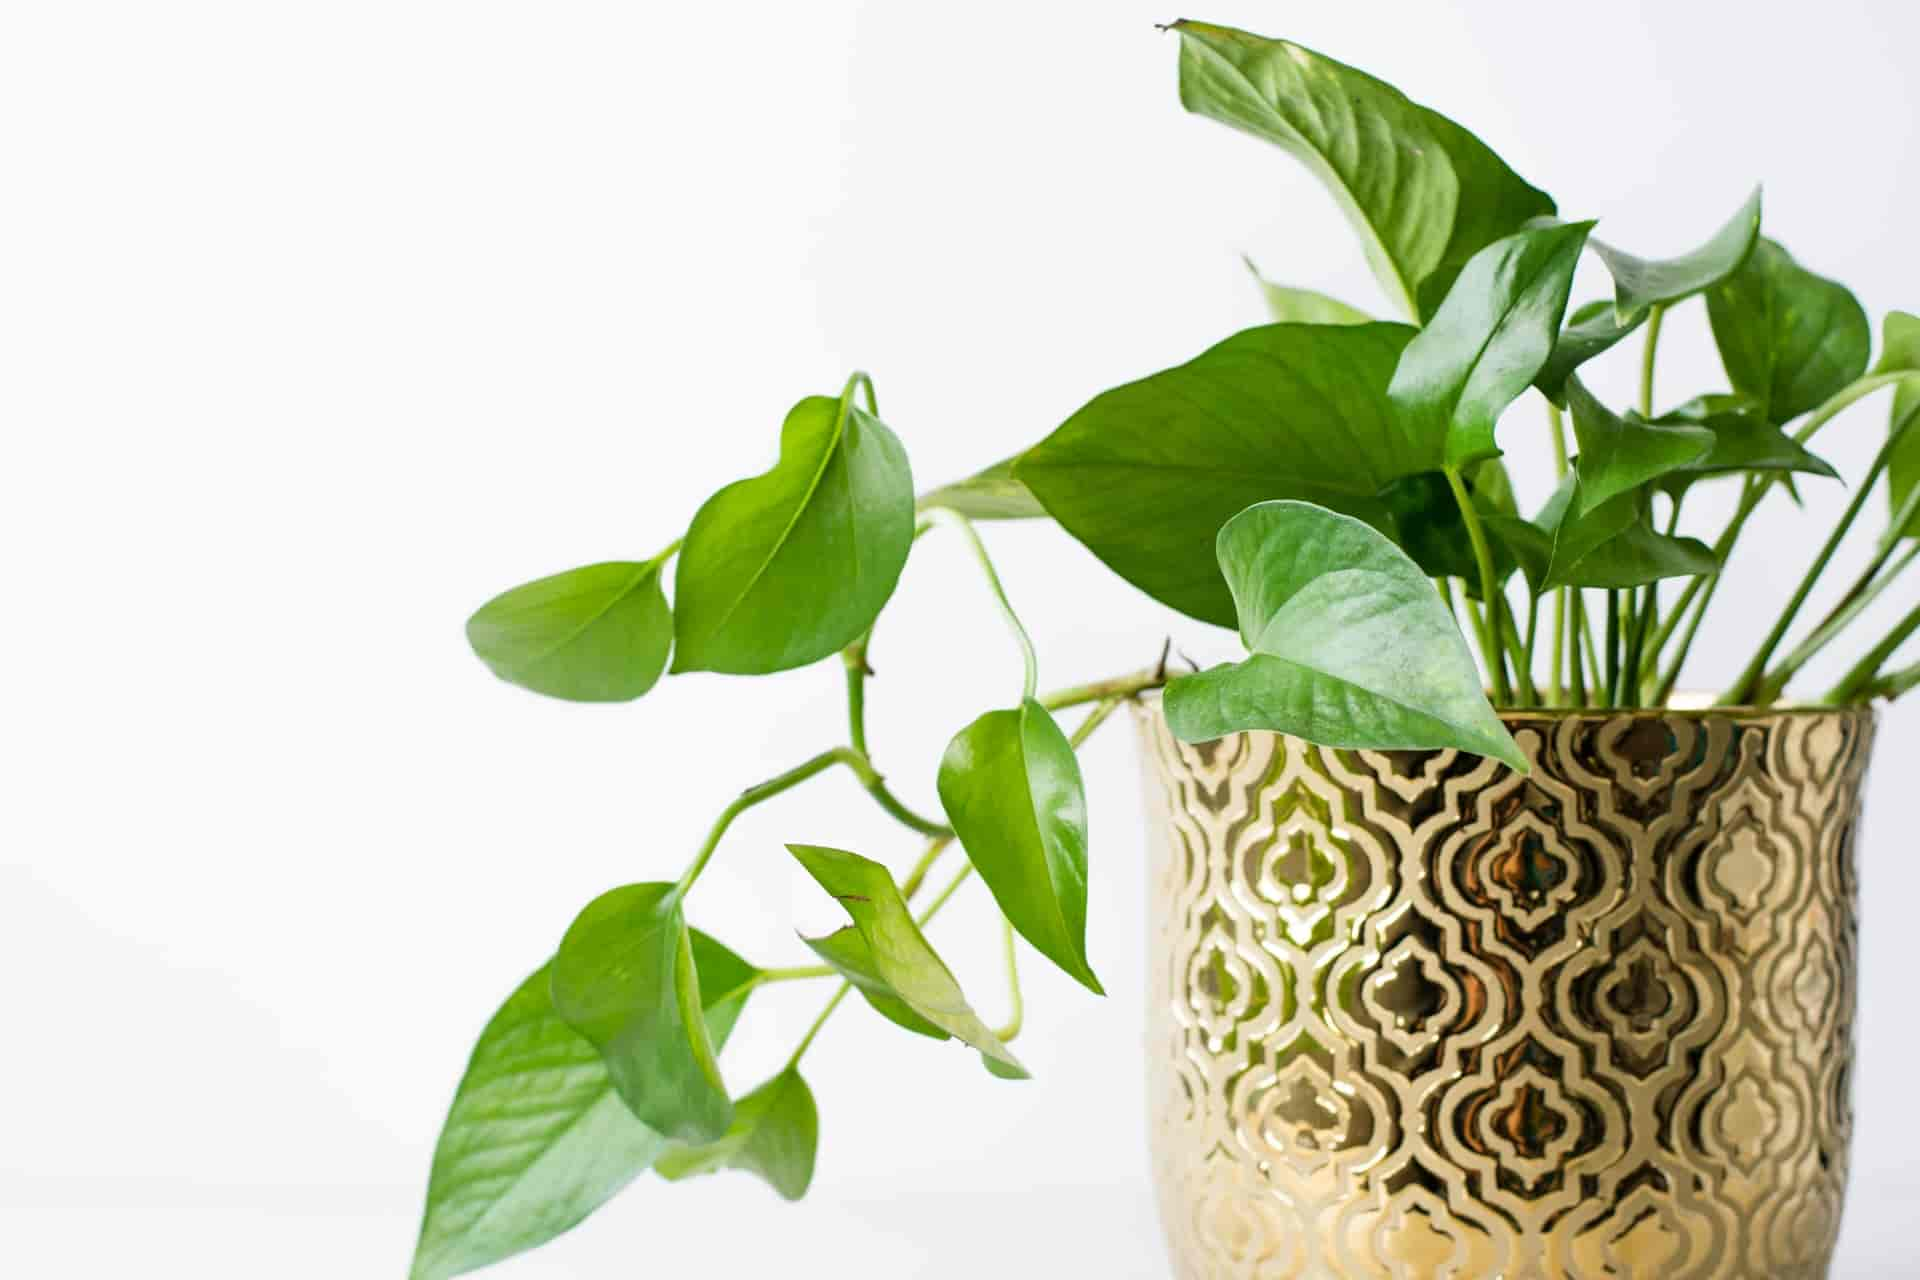 do pothos like to climb or hang